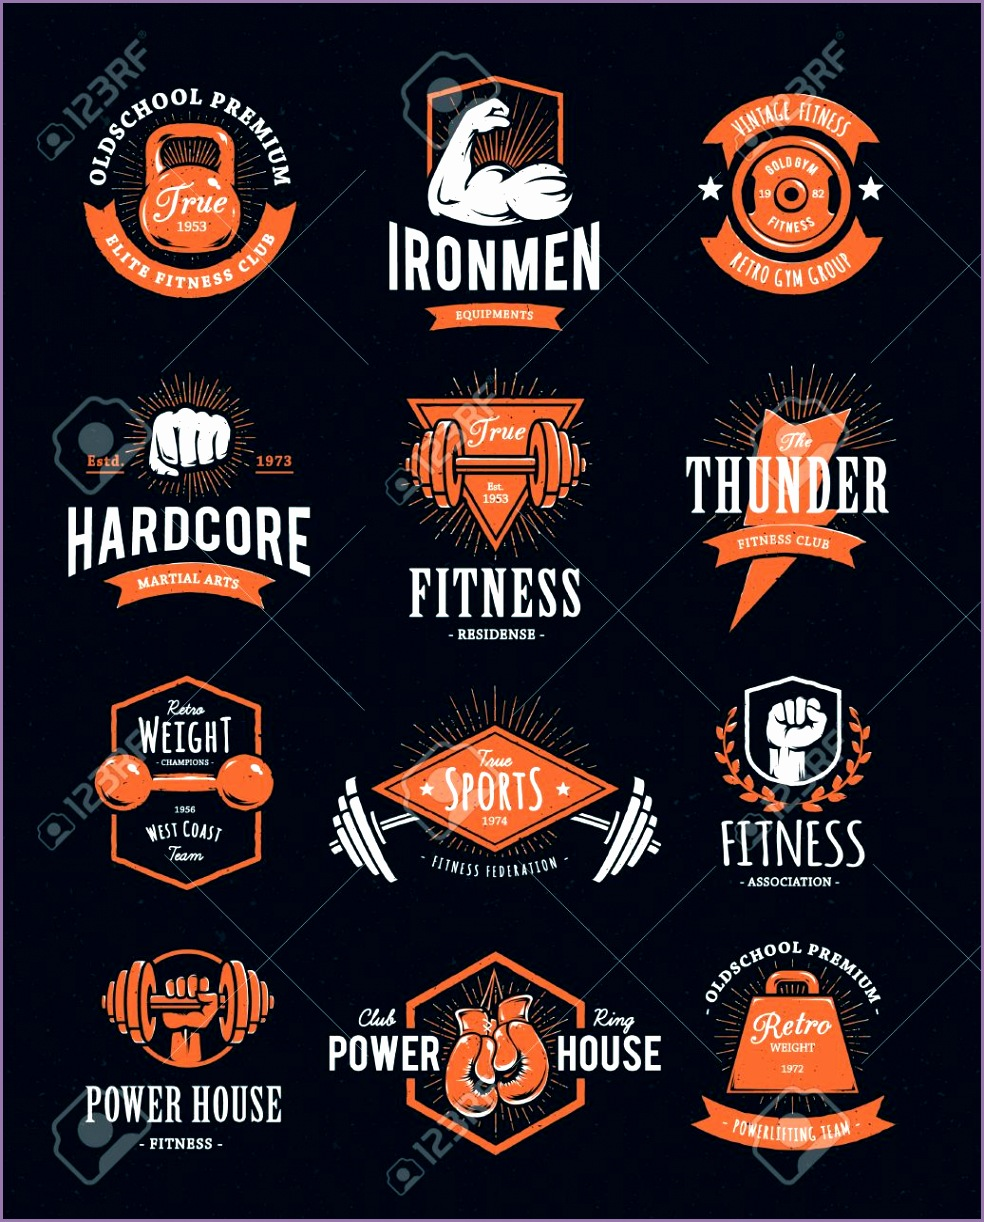 Set of retro styled fitness emblems Vintage gym logo templates Vector illustrations Stock